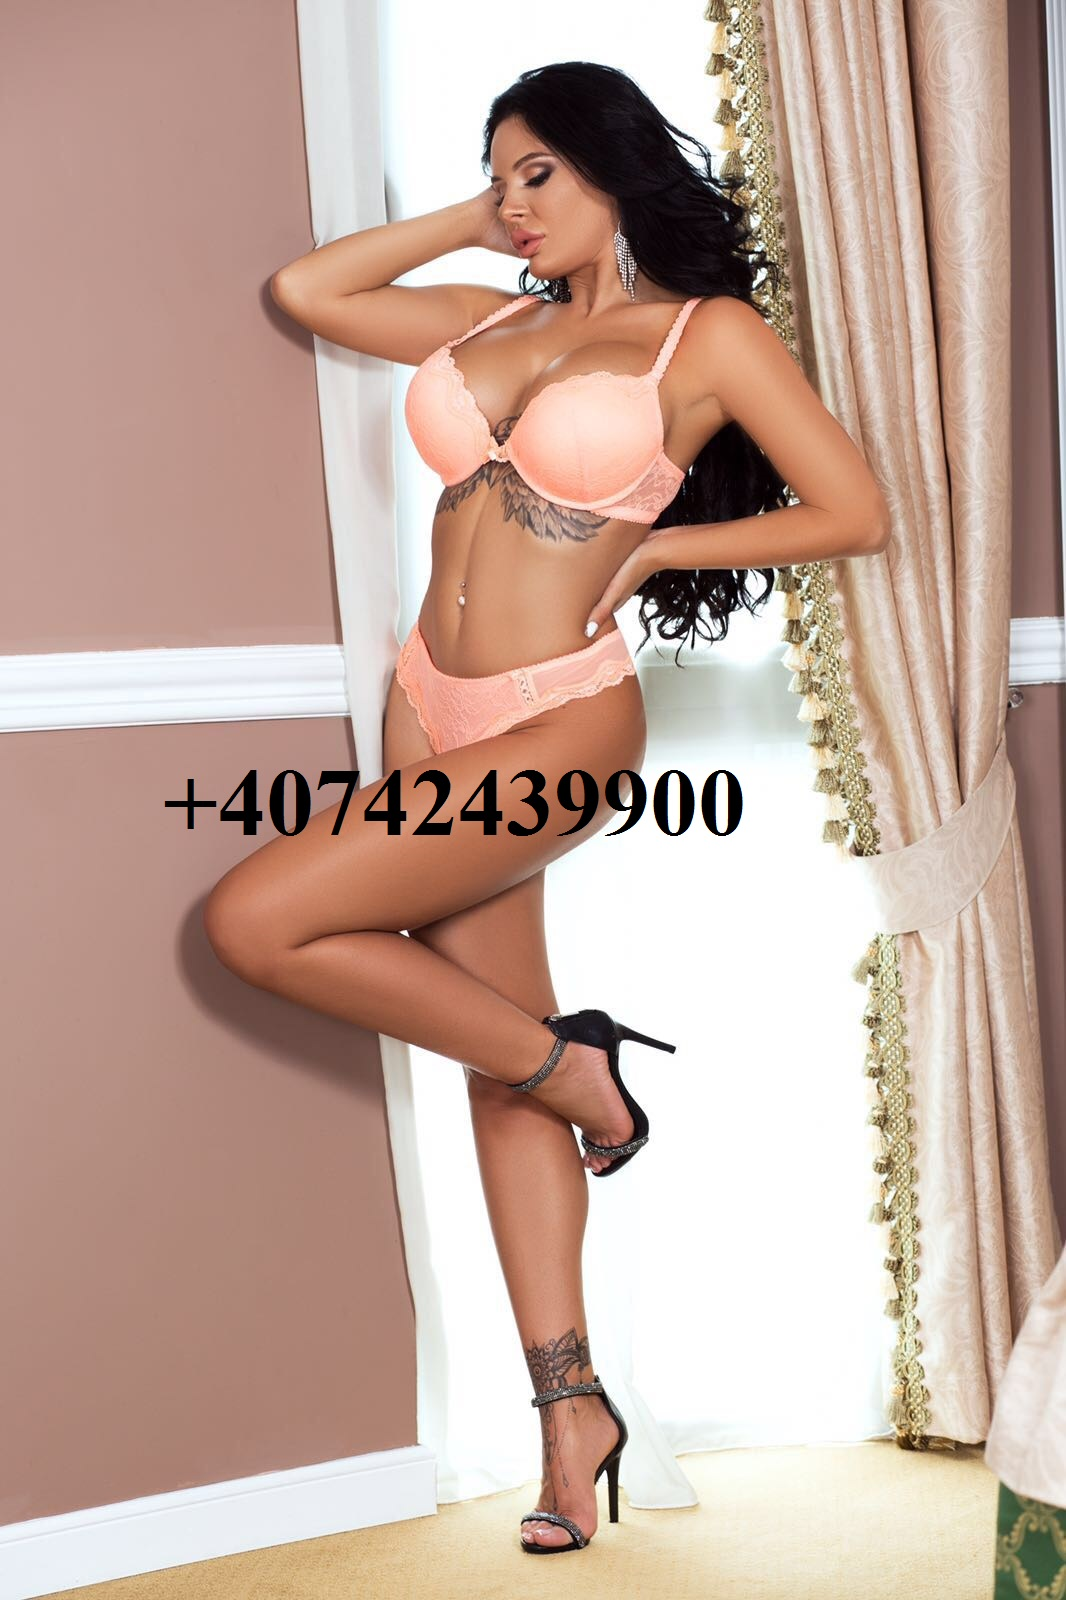 Dating in Dubai Tips and Rules